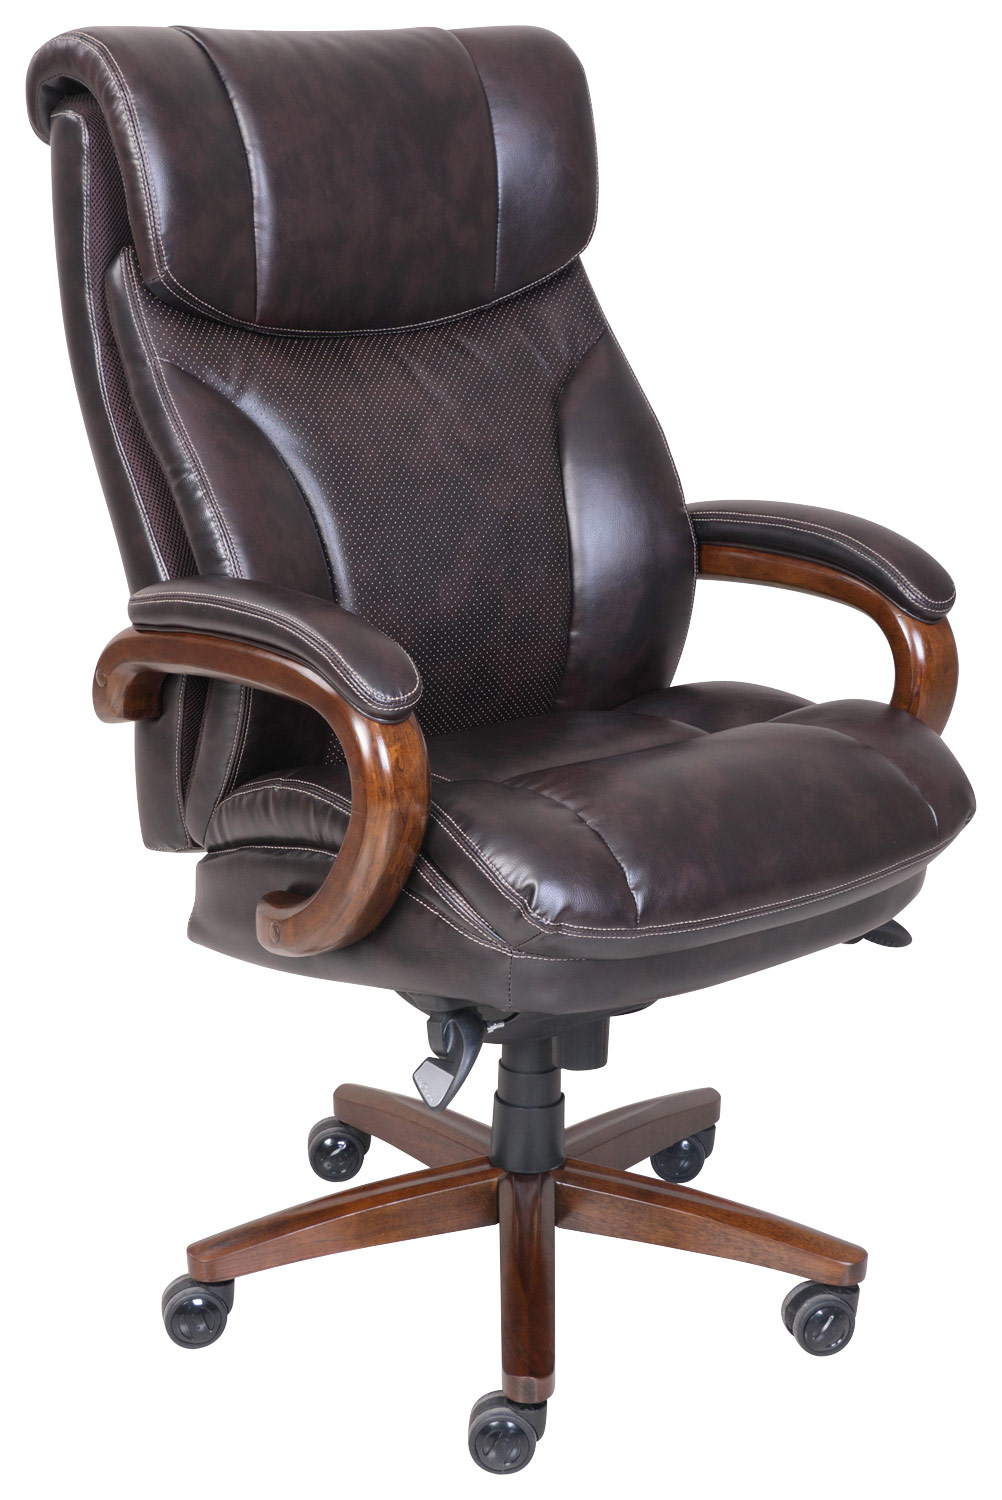 la z boy martin big and tall executive office chair brown ikea covers dubai air bonded leather 45782 vino